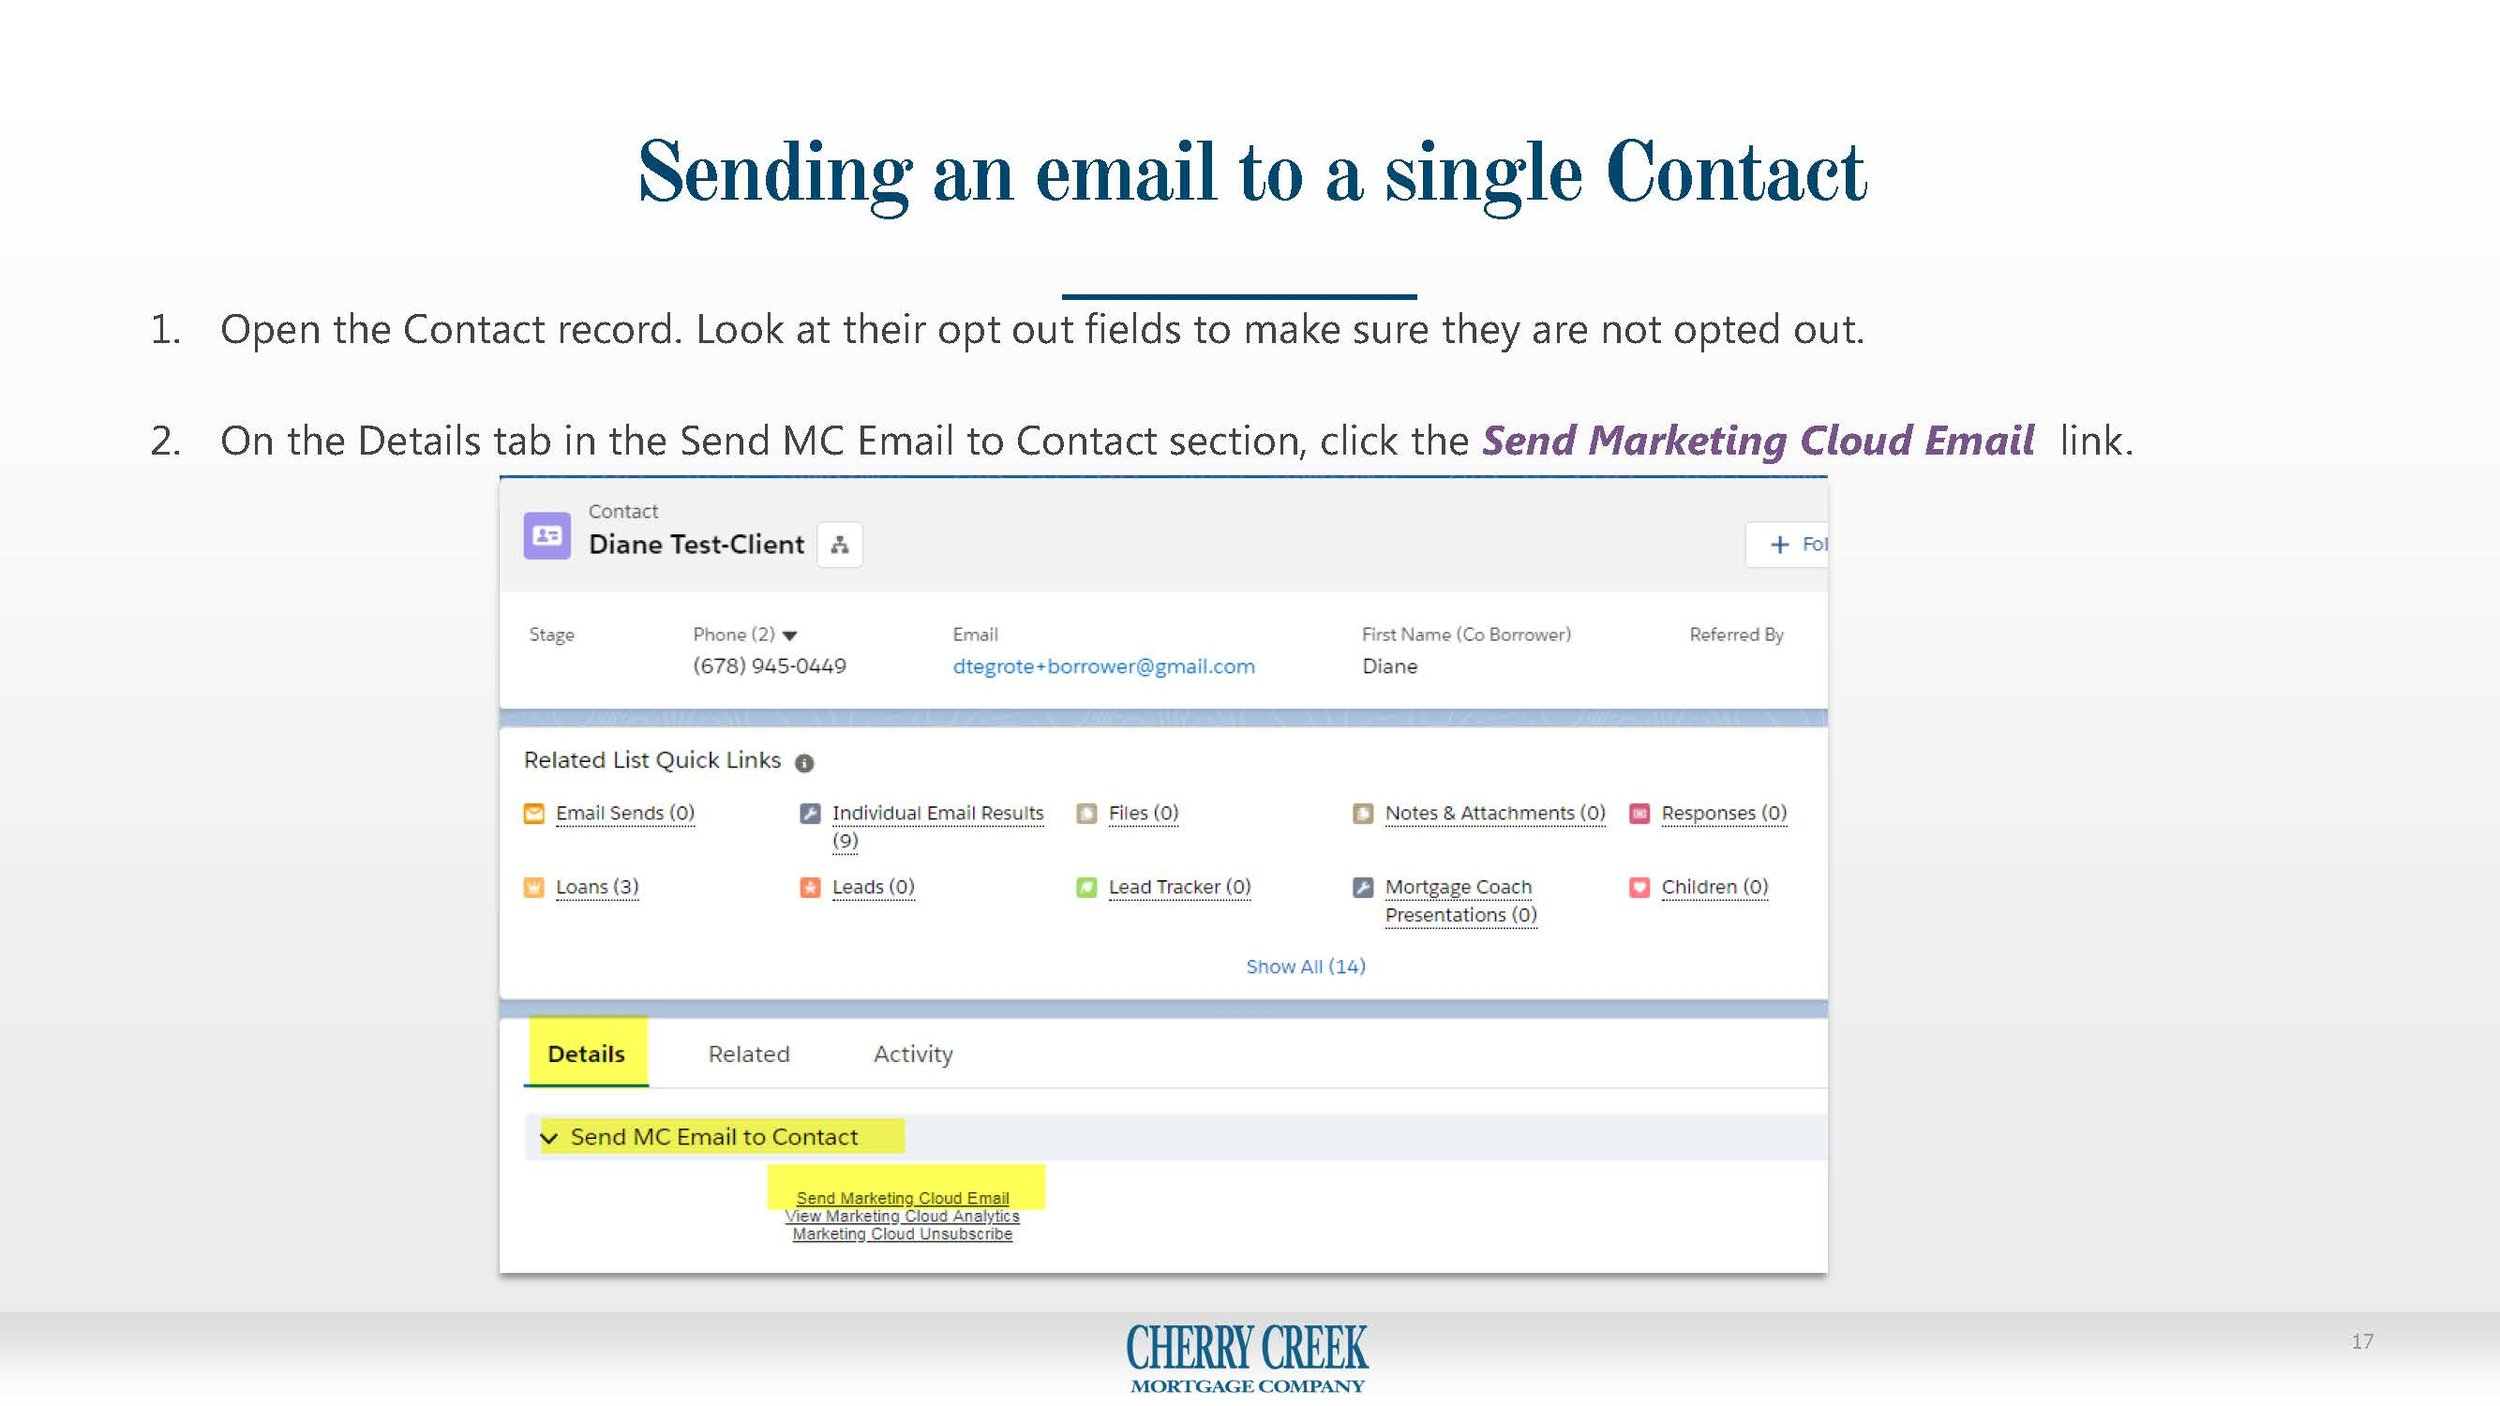 Marketing_Cloud_User_Training-CCMC_Jungo_Users-Lightning_Page_17.jpg